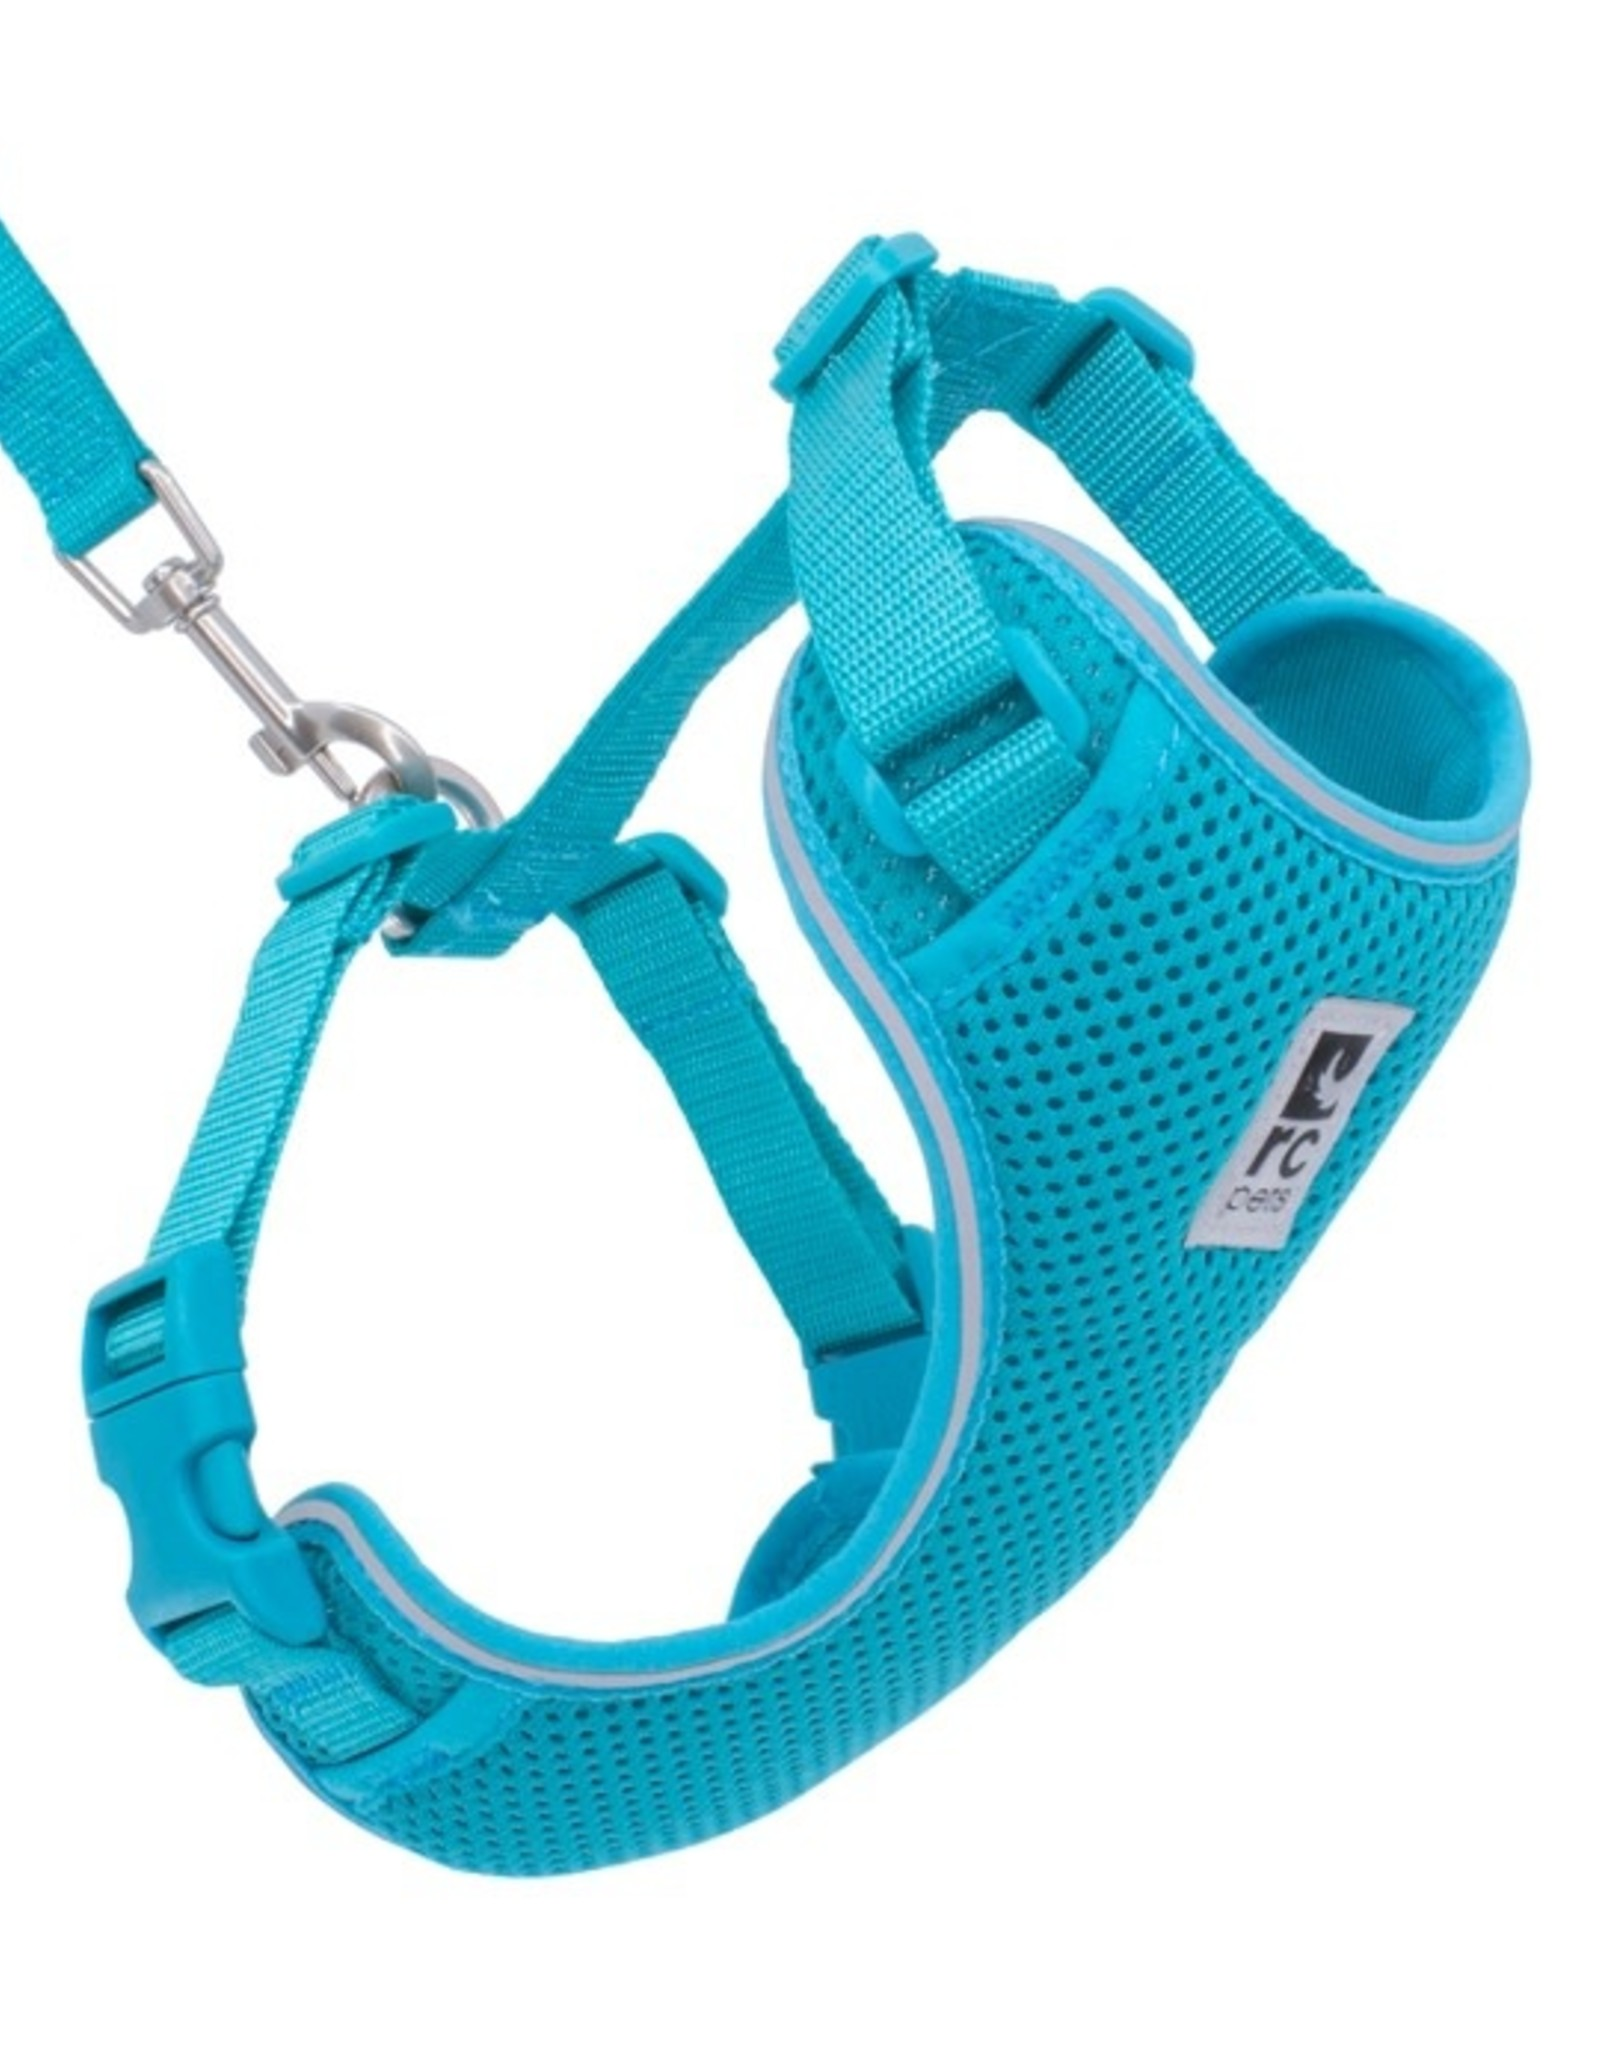 RC PETS RC Pets Adventure Kitty Harness S Teal